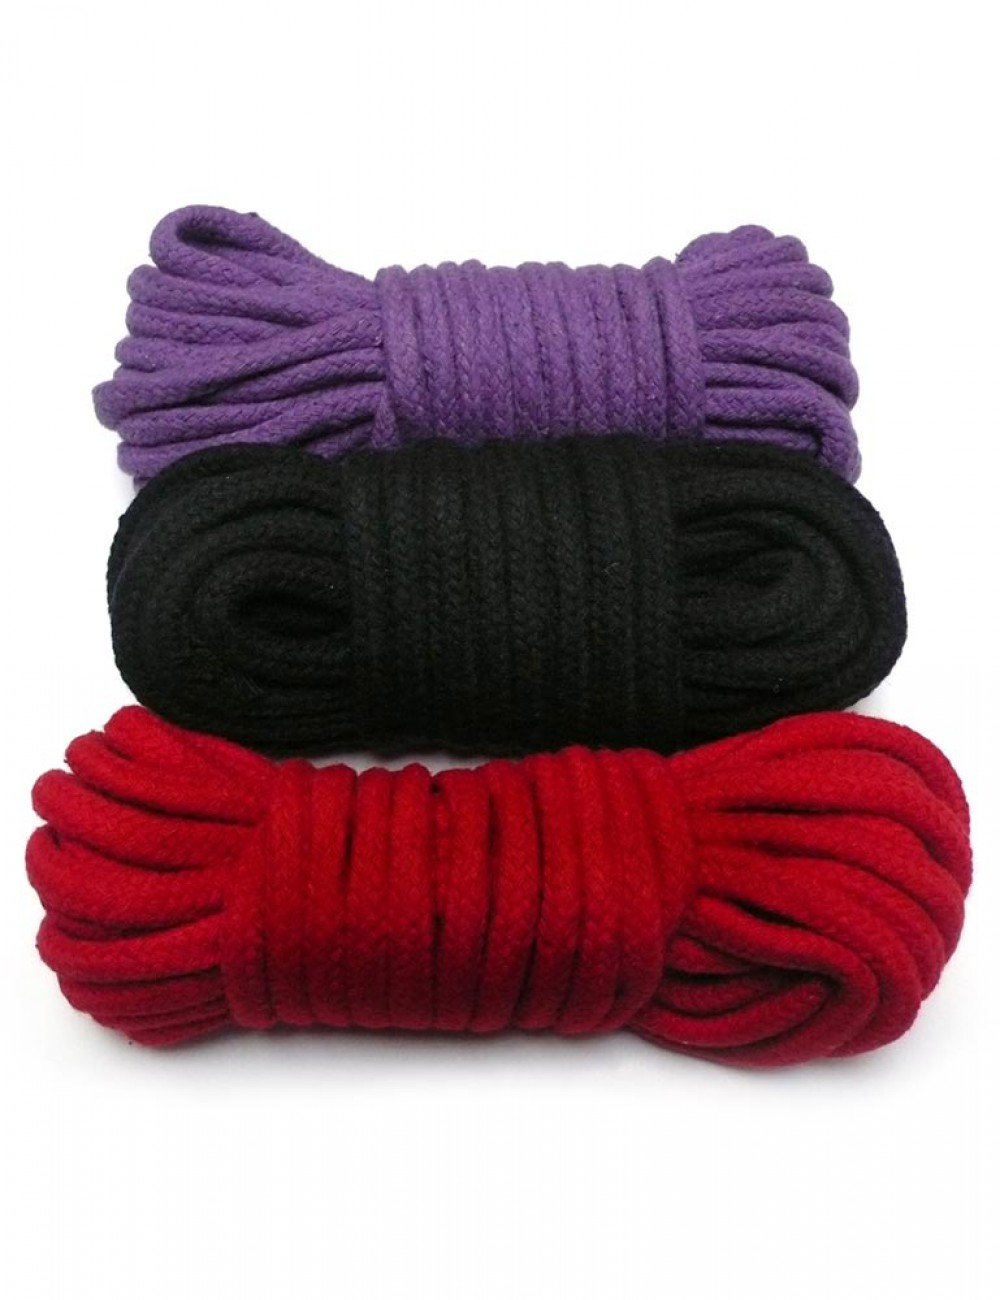 Cotton Bondage Rope 95